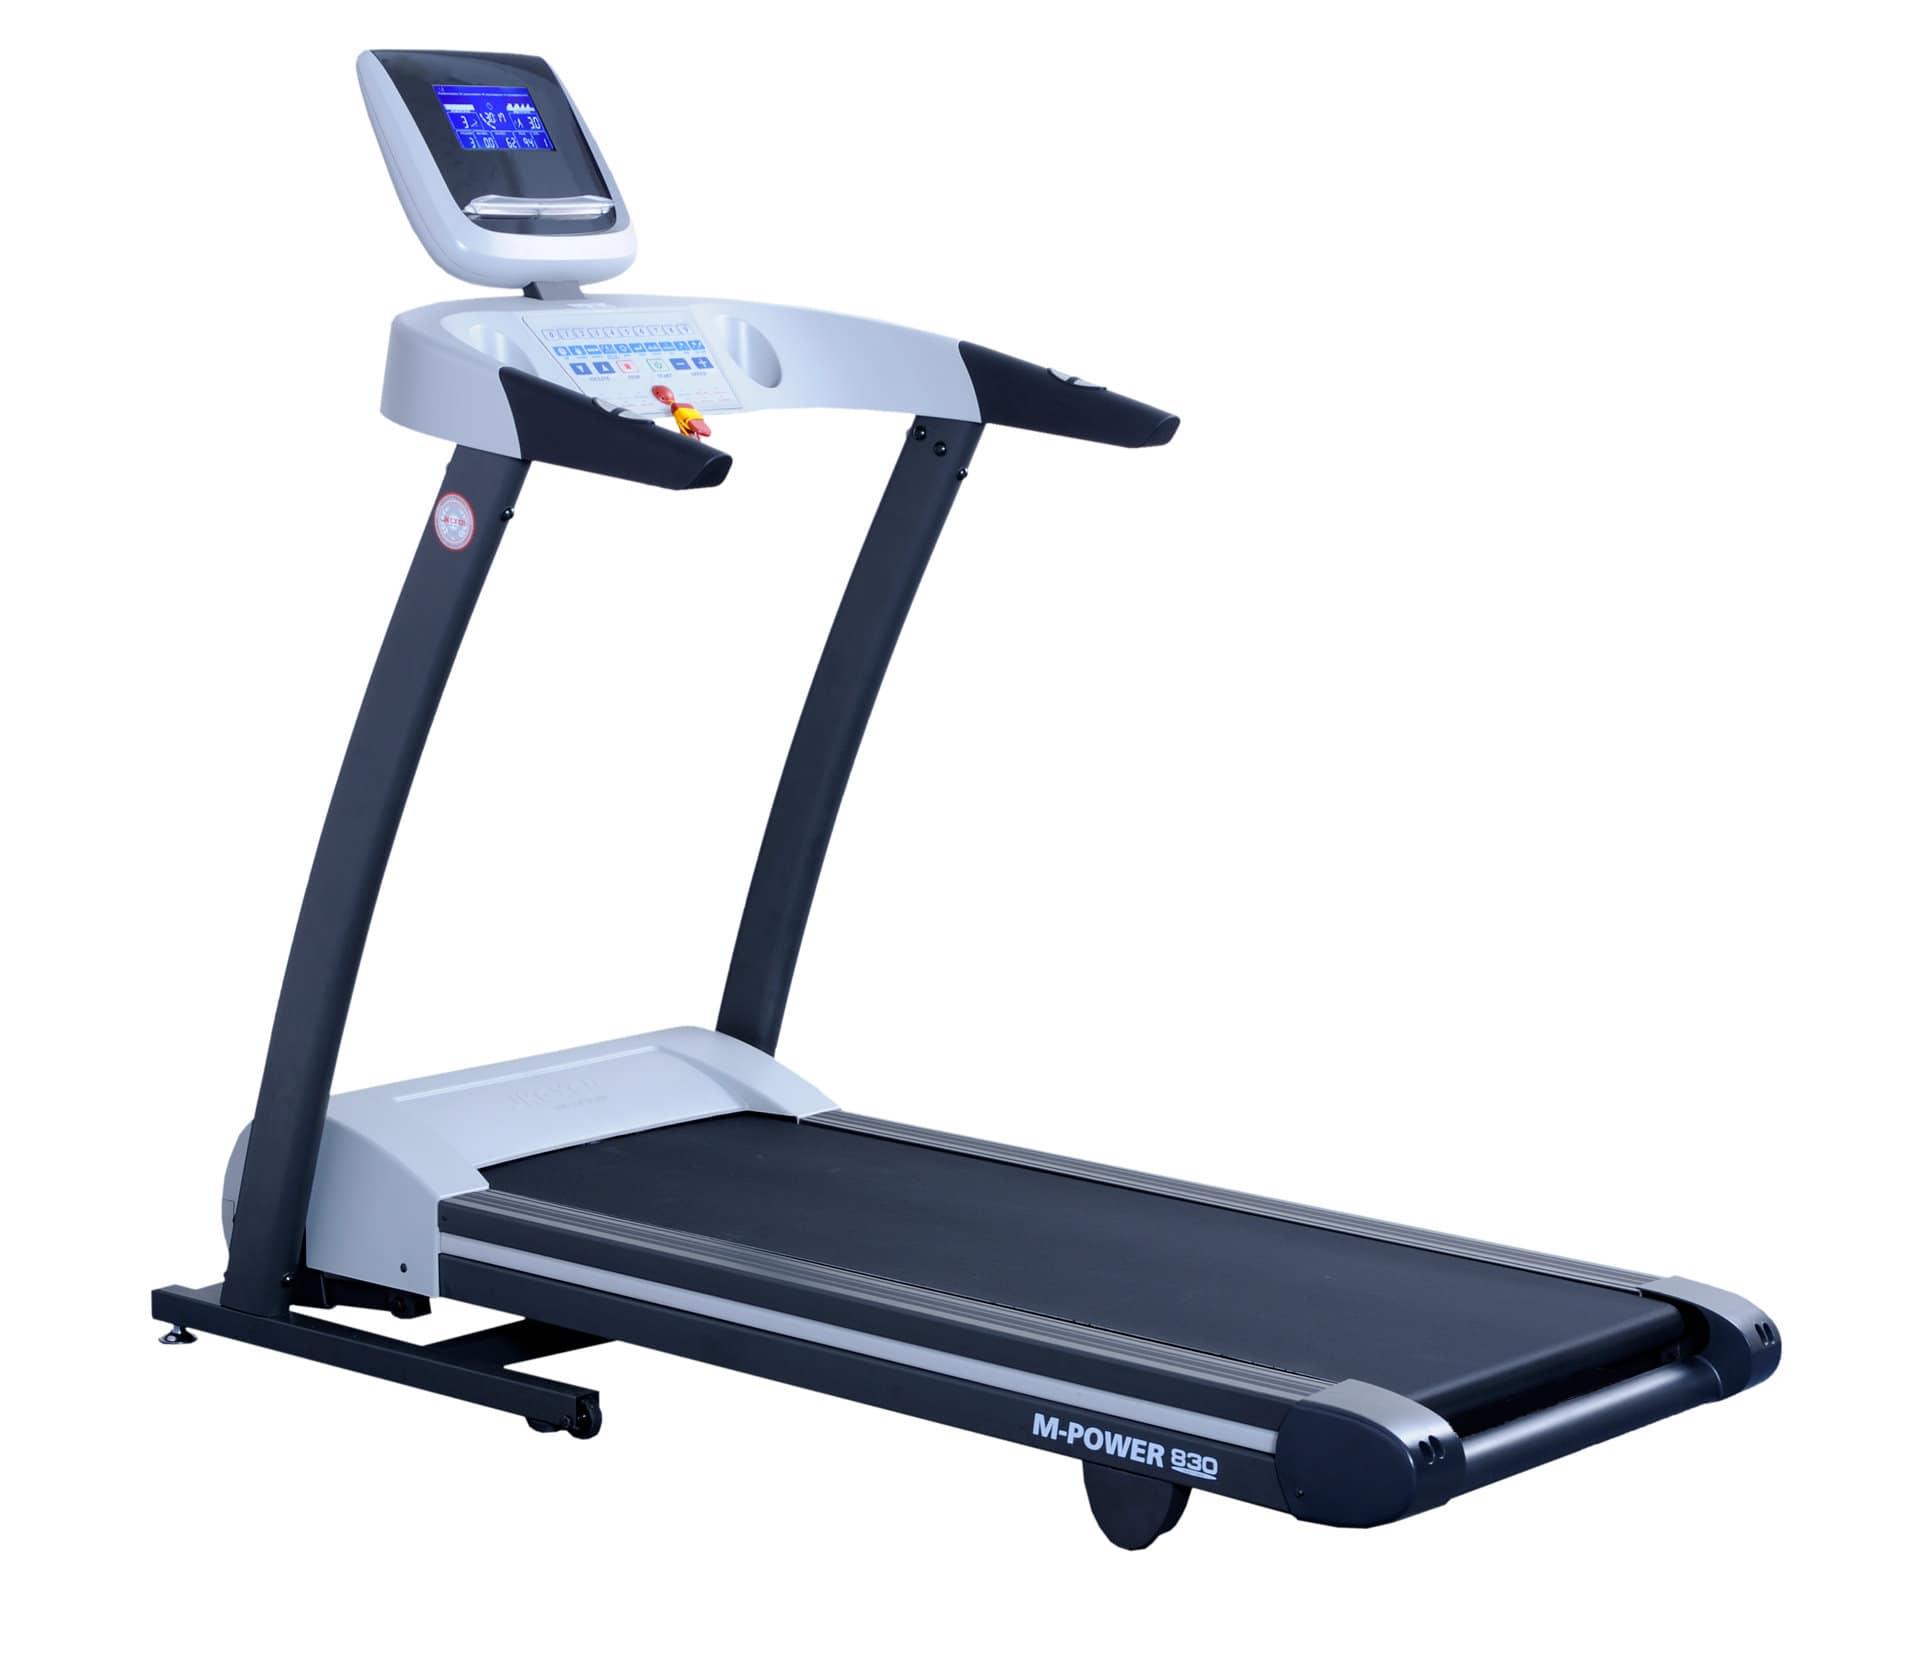 M POWER 830 TREADMILLS